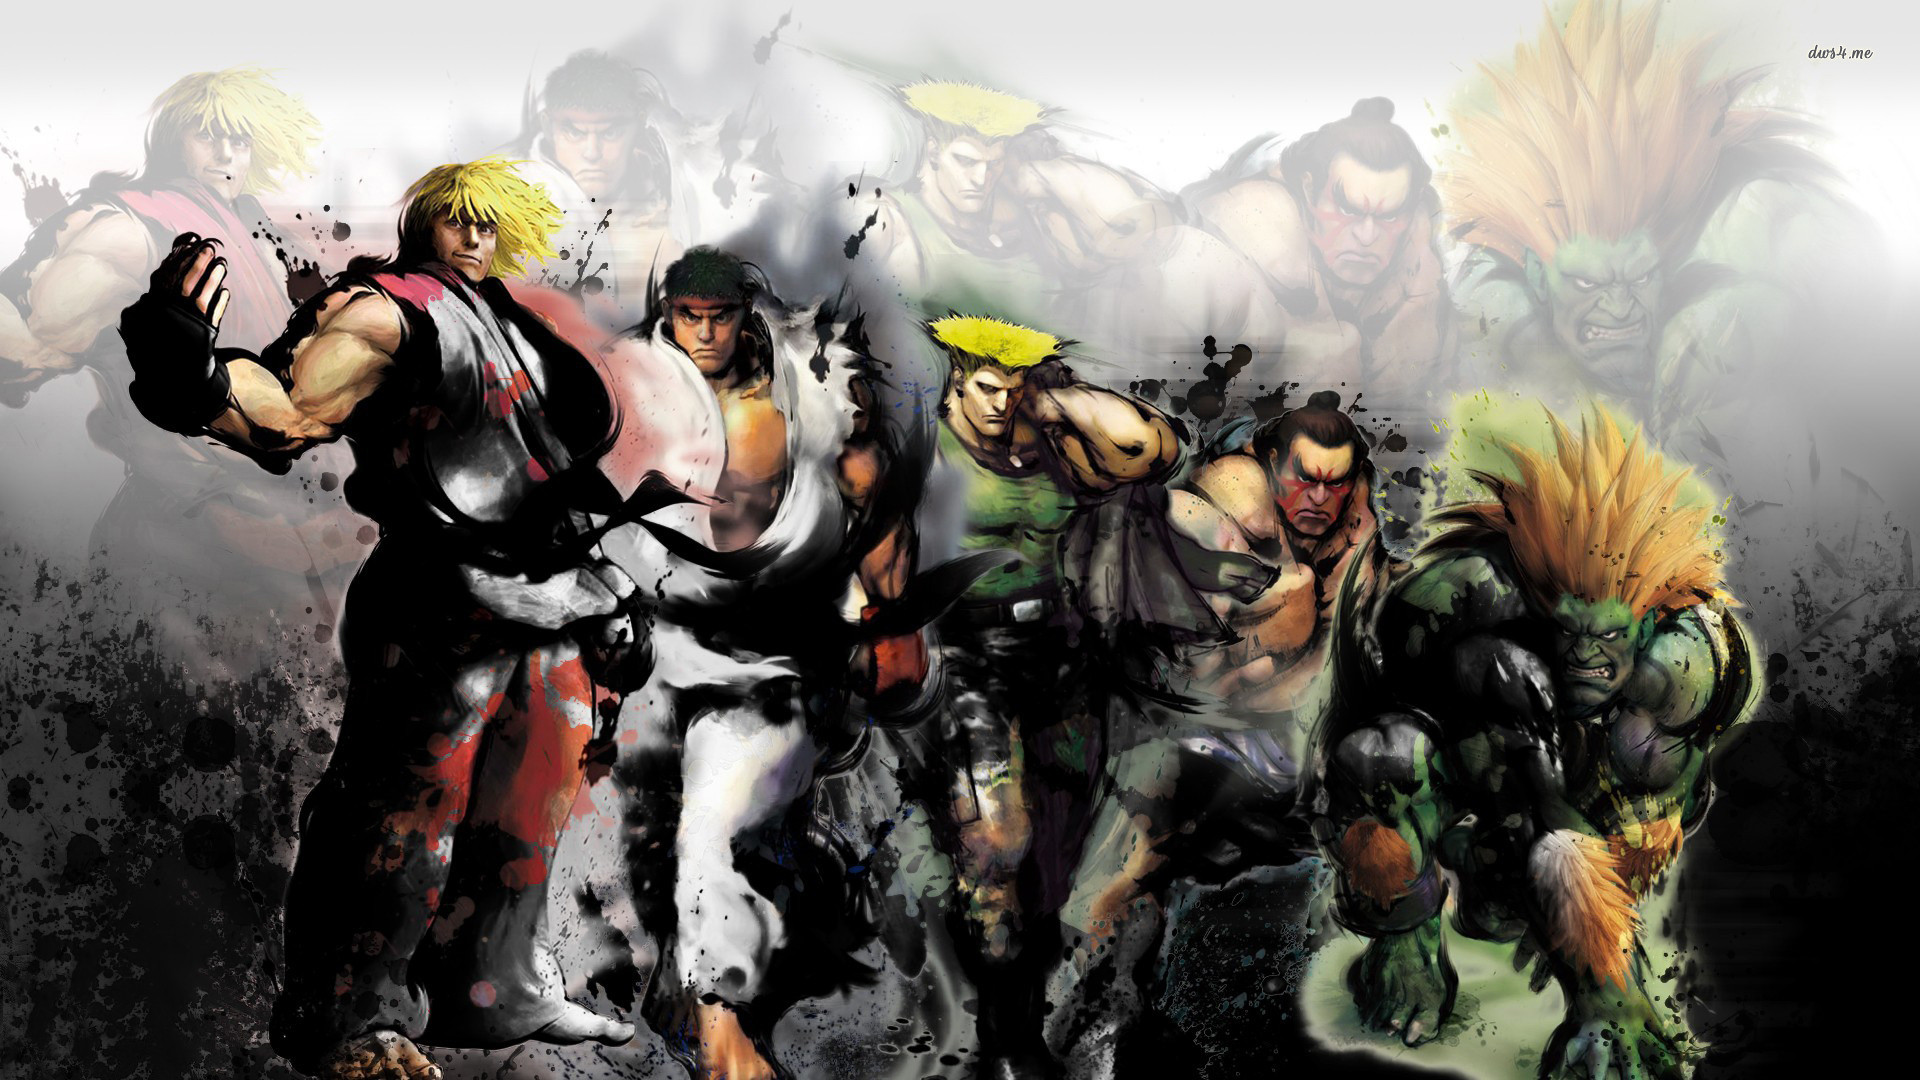 Street Fighter IV wallpaper – Game wallpapers – #13129